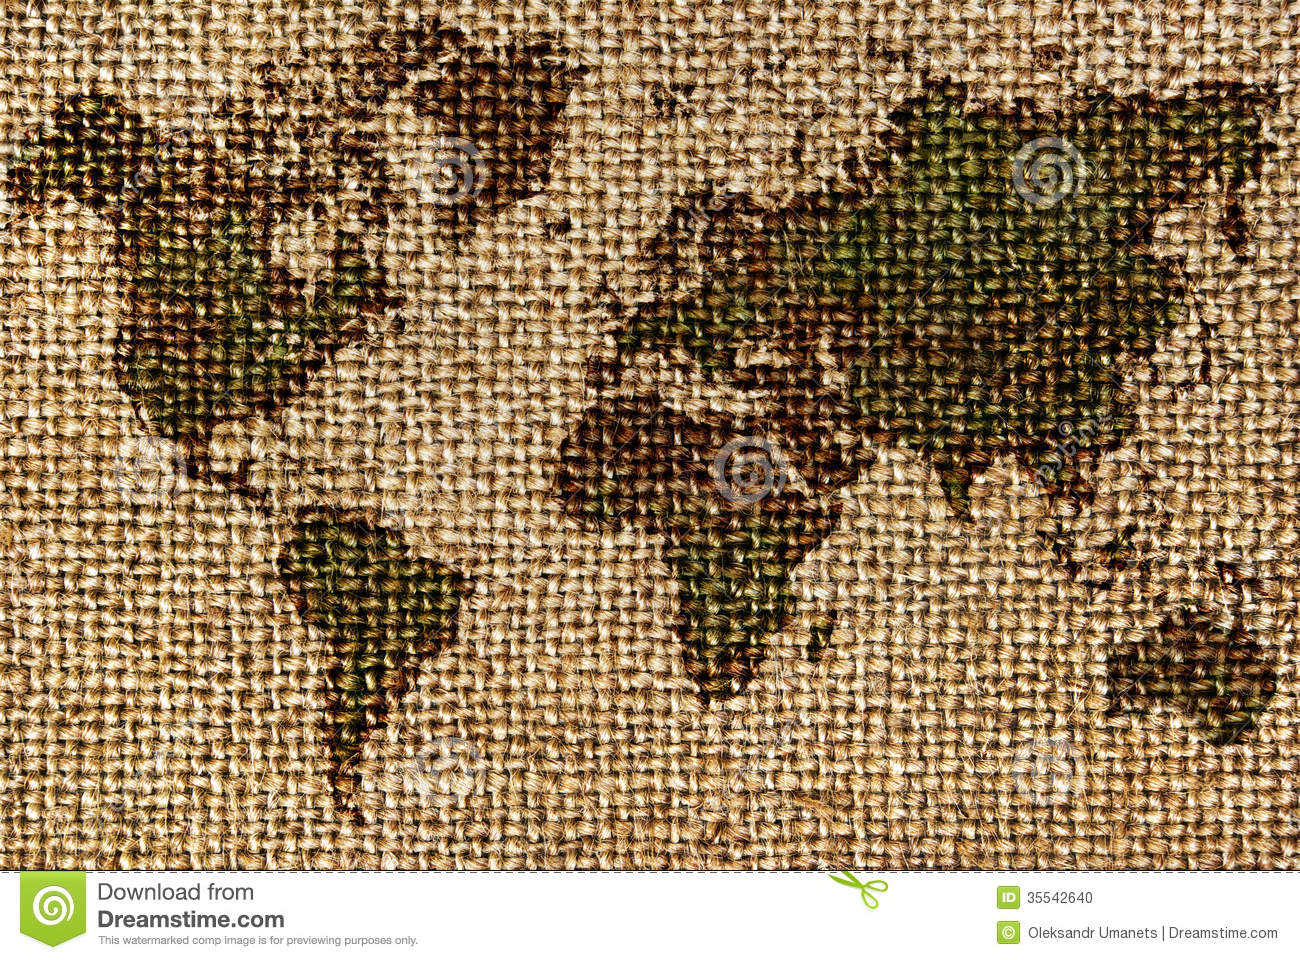 World map drawn on a roughold fabrics stock photo image of fabric world map drawn on a roughold fabrics stock photo image of fabric rough 35542640 gumiabroncs Images